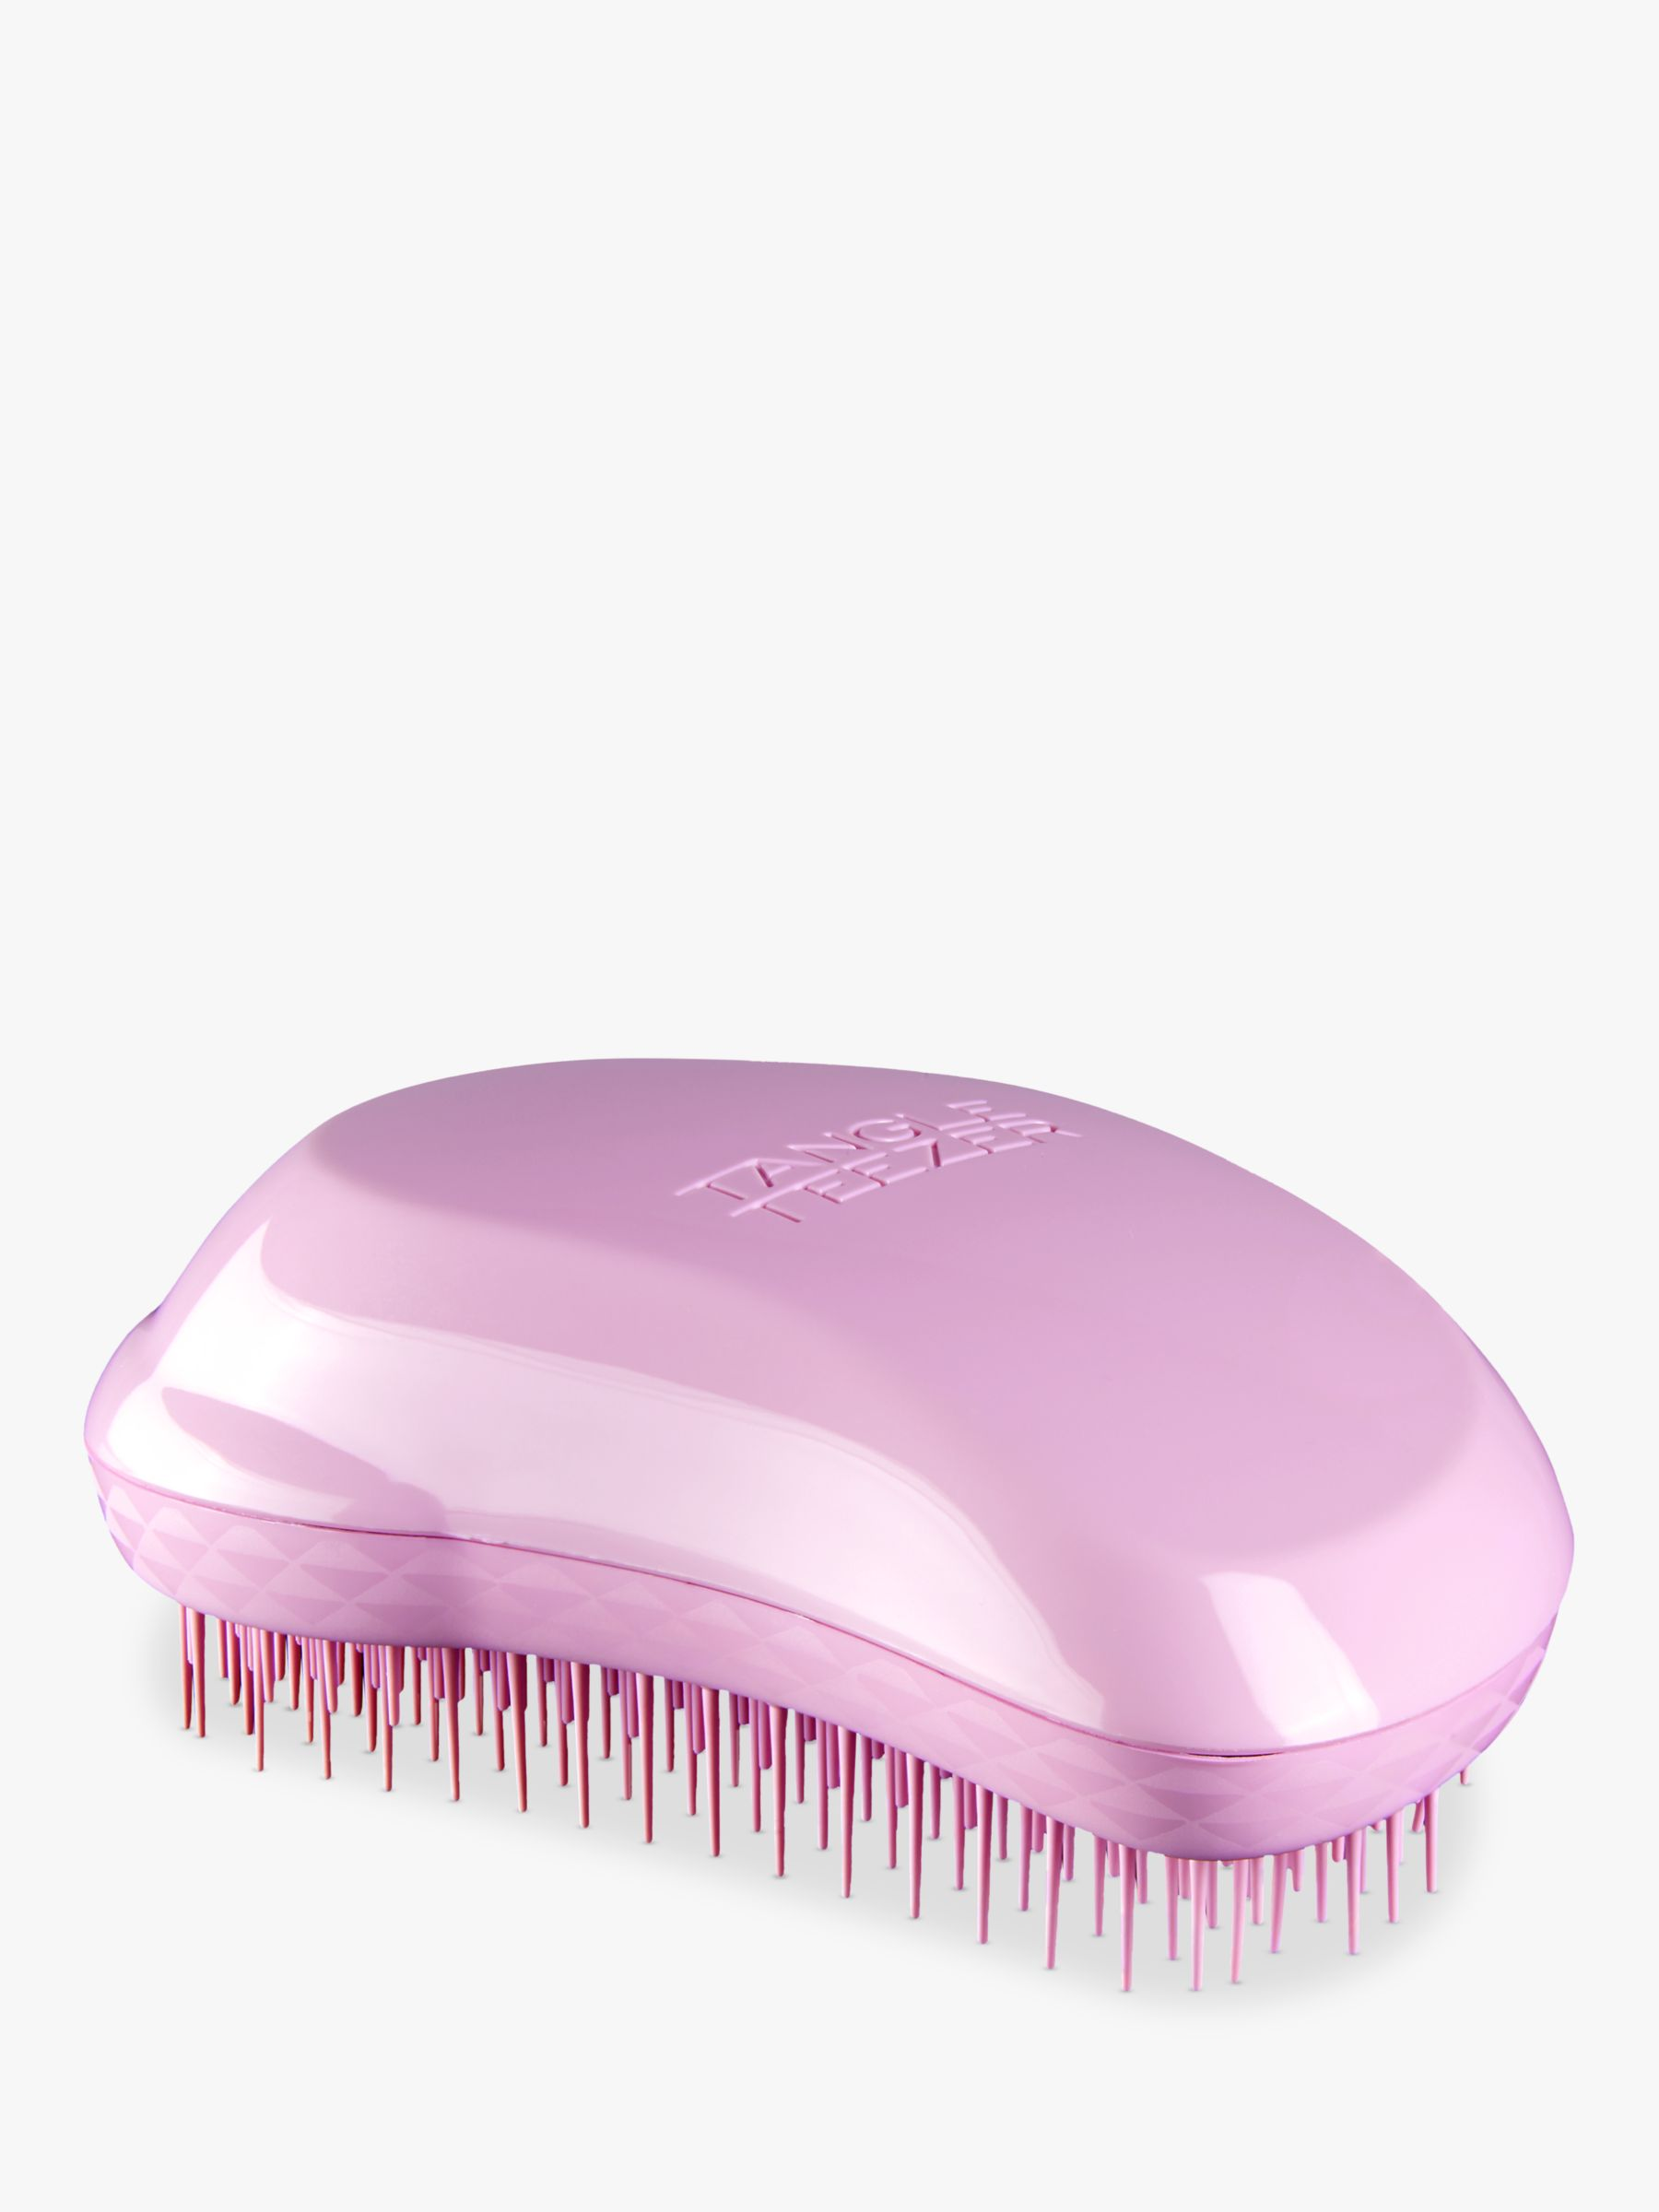 Tangle Teezer Tangle Teezer Fine & Fragile Hair Brush, Pink Dawn